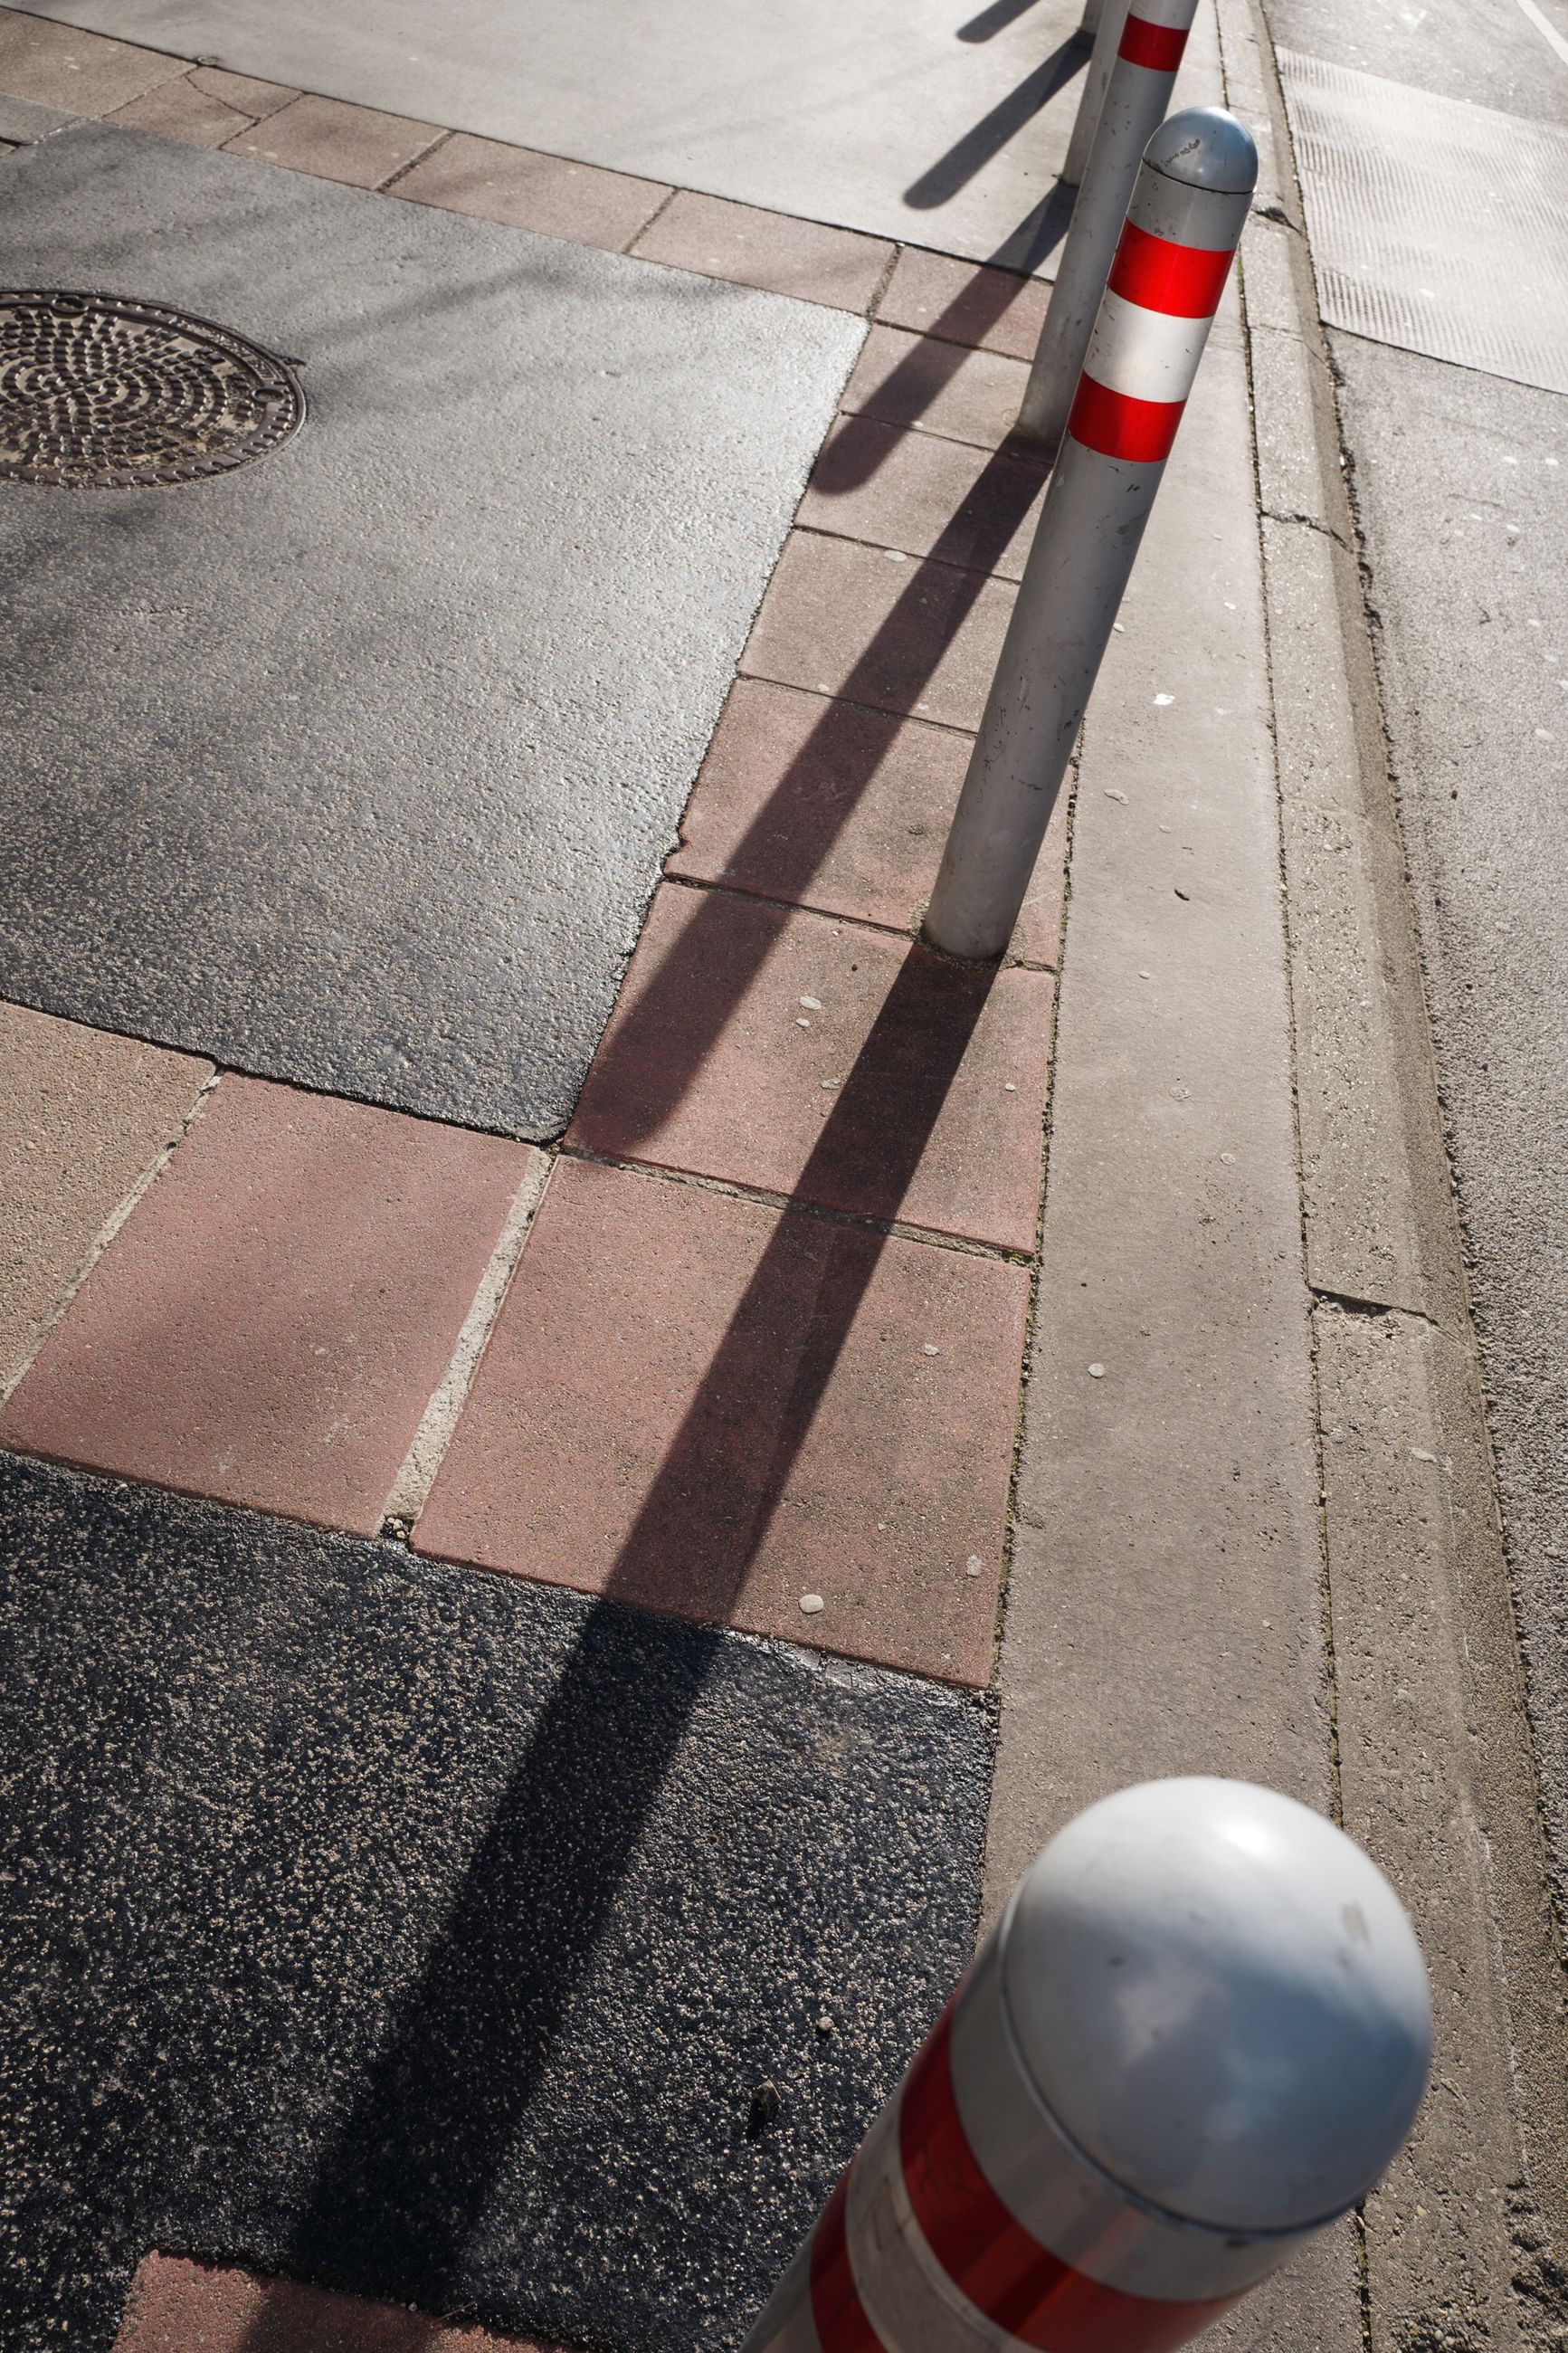 high angle view, transportation, road, sign, symbol, city, street, day, safety, road marking, marking, traffic cone, cone, striped, security, protection, guidance, shadow, outdoors, one person, dividing line